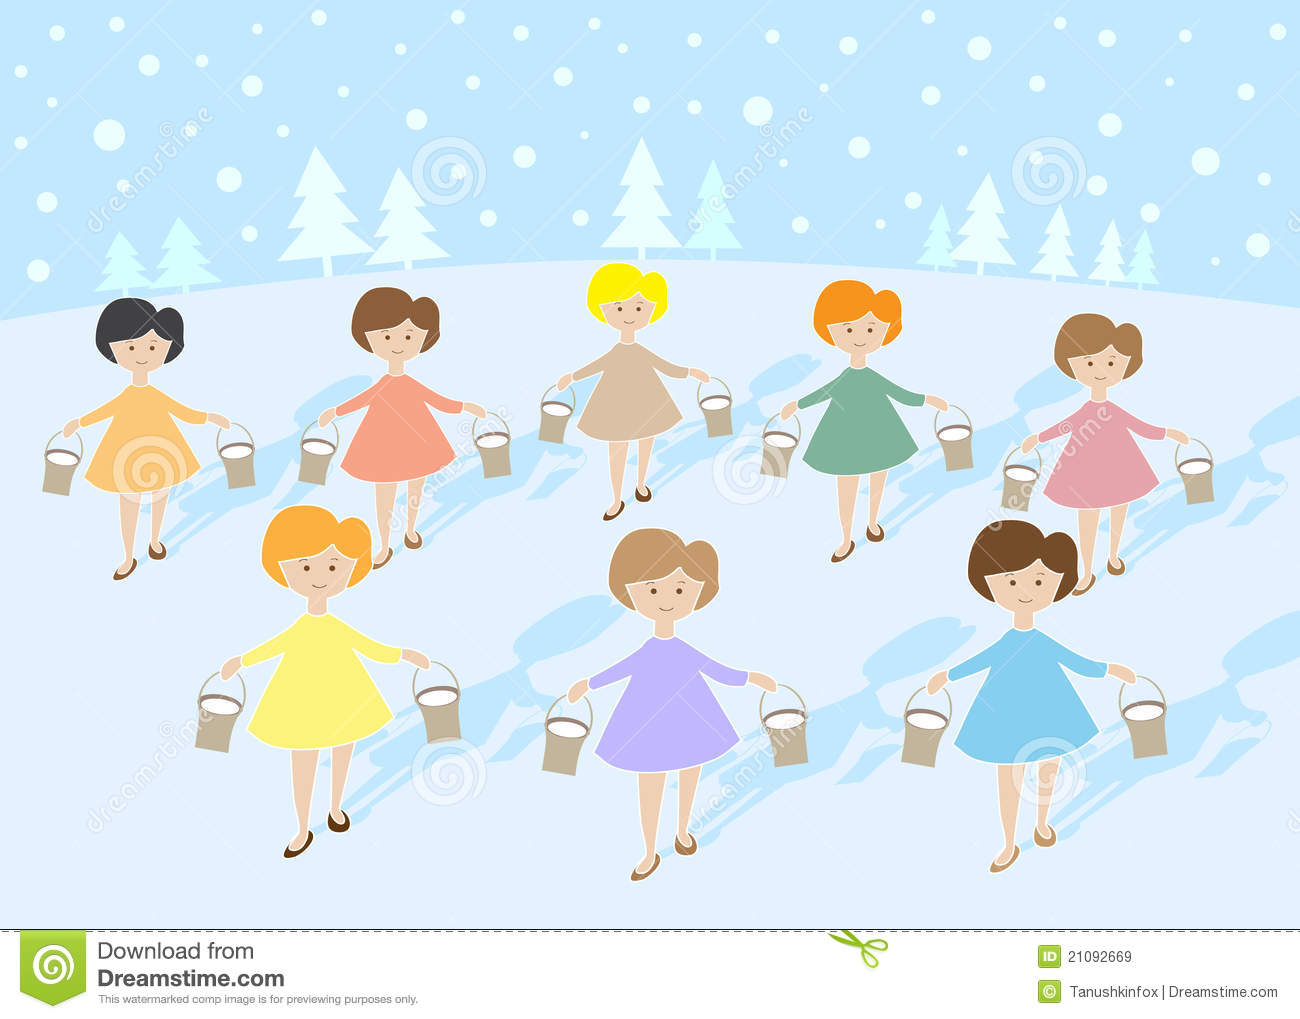 12 Days Of Christmas: 8 Maids A Milking Stock Vector.